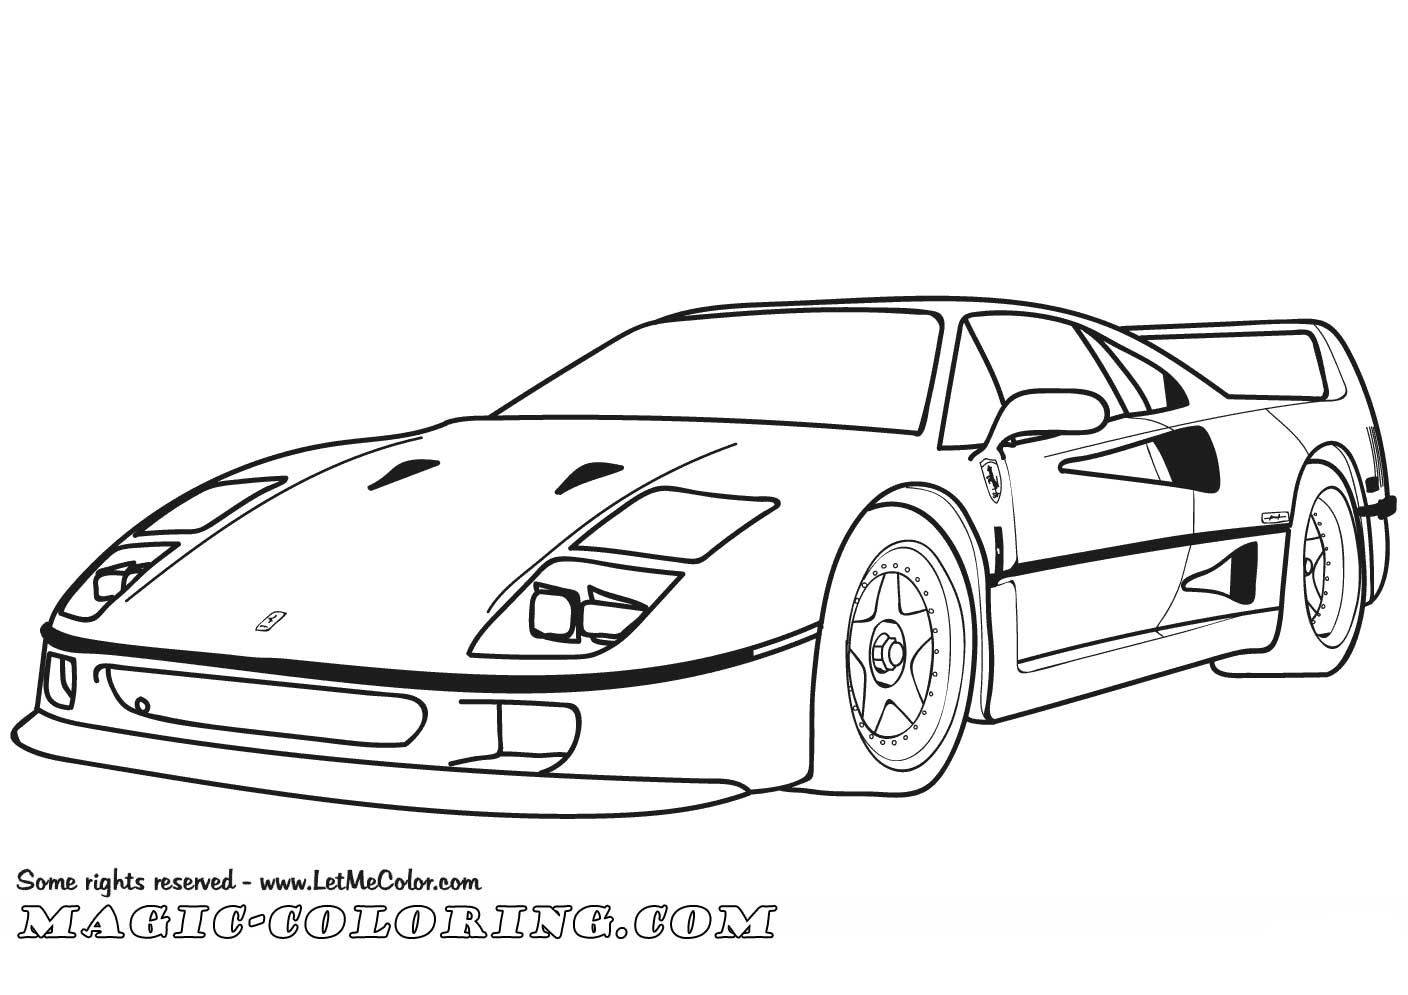 Ferrari F40 Coloring Page Cars Coloring Pages Coloring Pages Ferrari F40